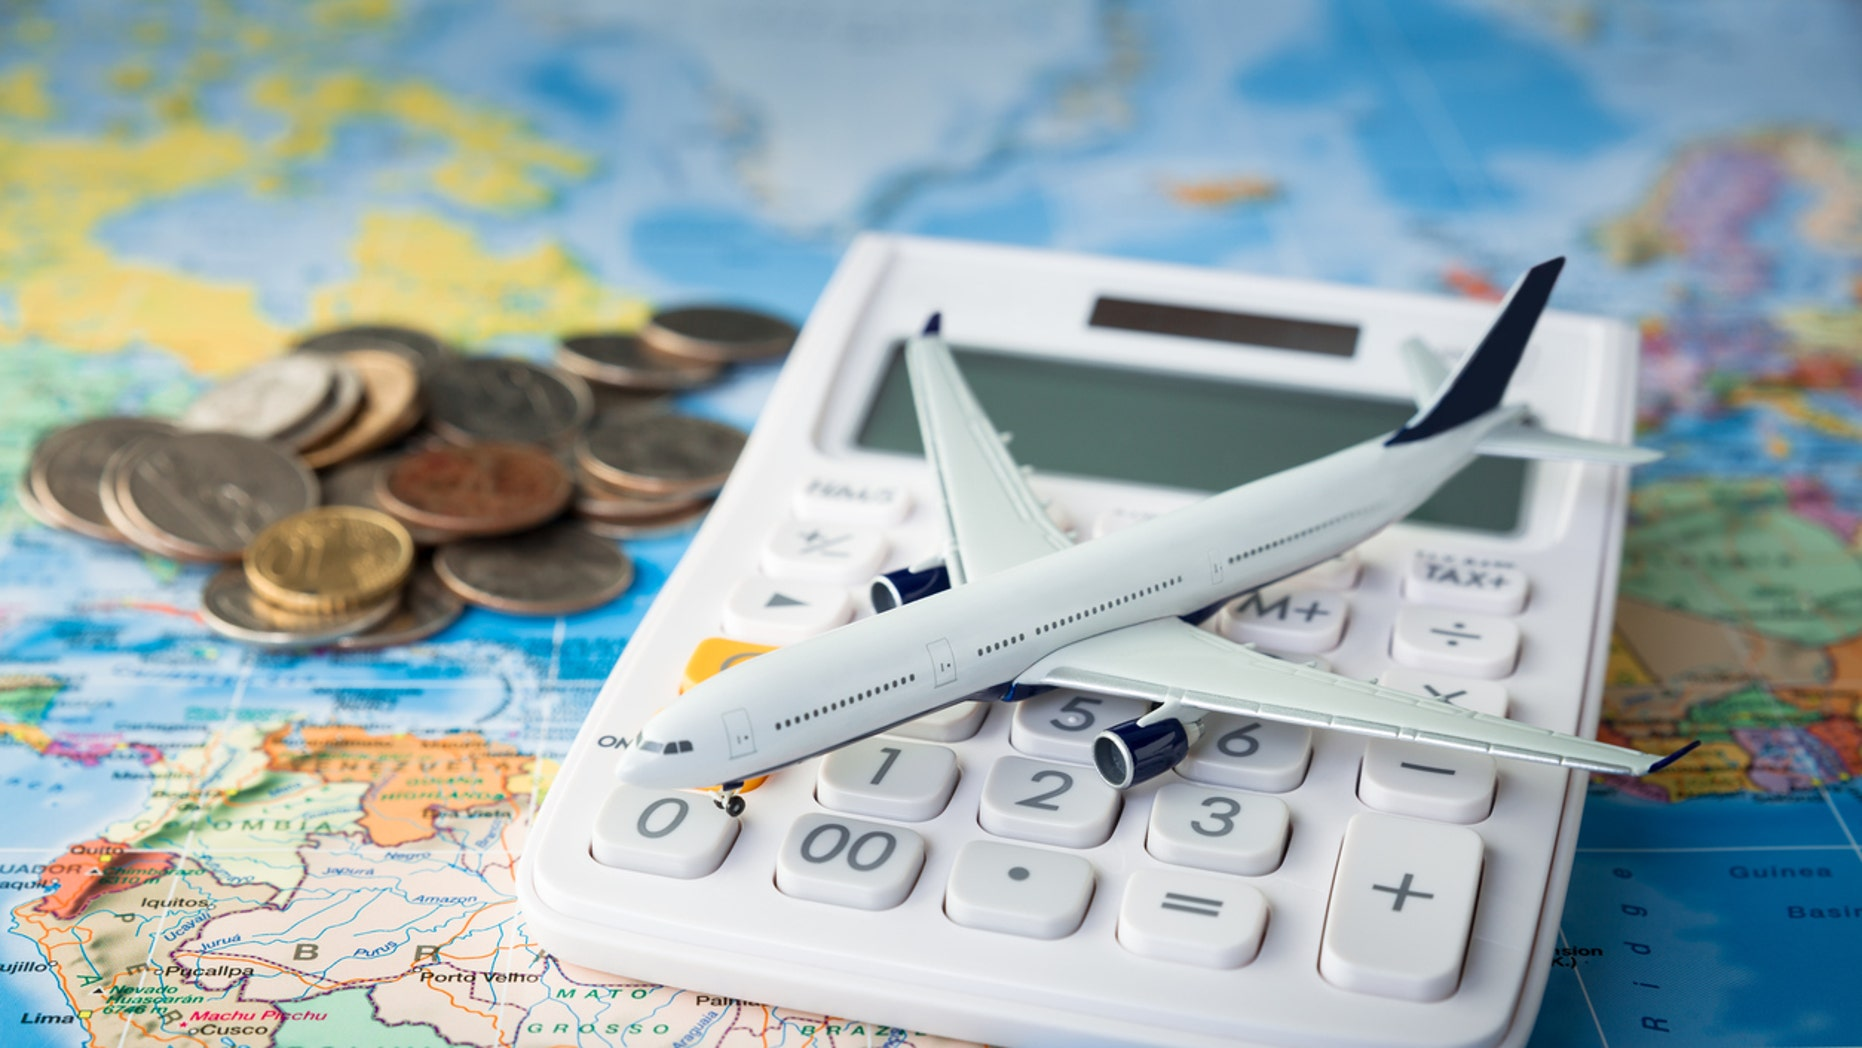 According to travel data, January is the ideal time to book trips at an affordable price.